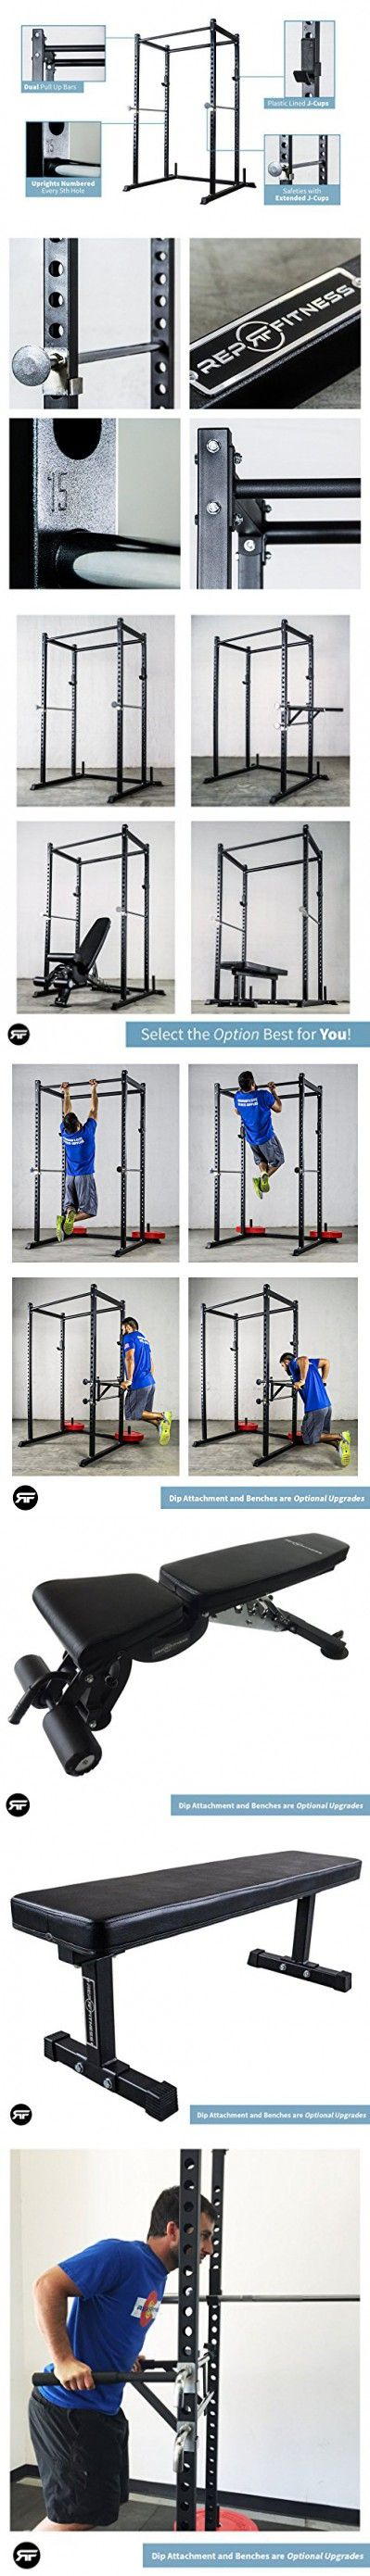 Dip attachment for bench